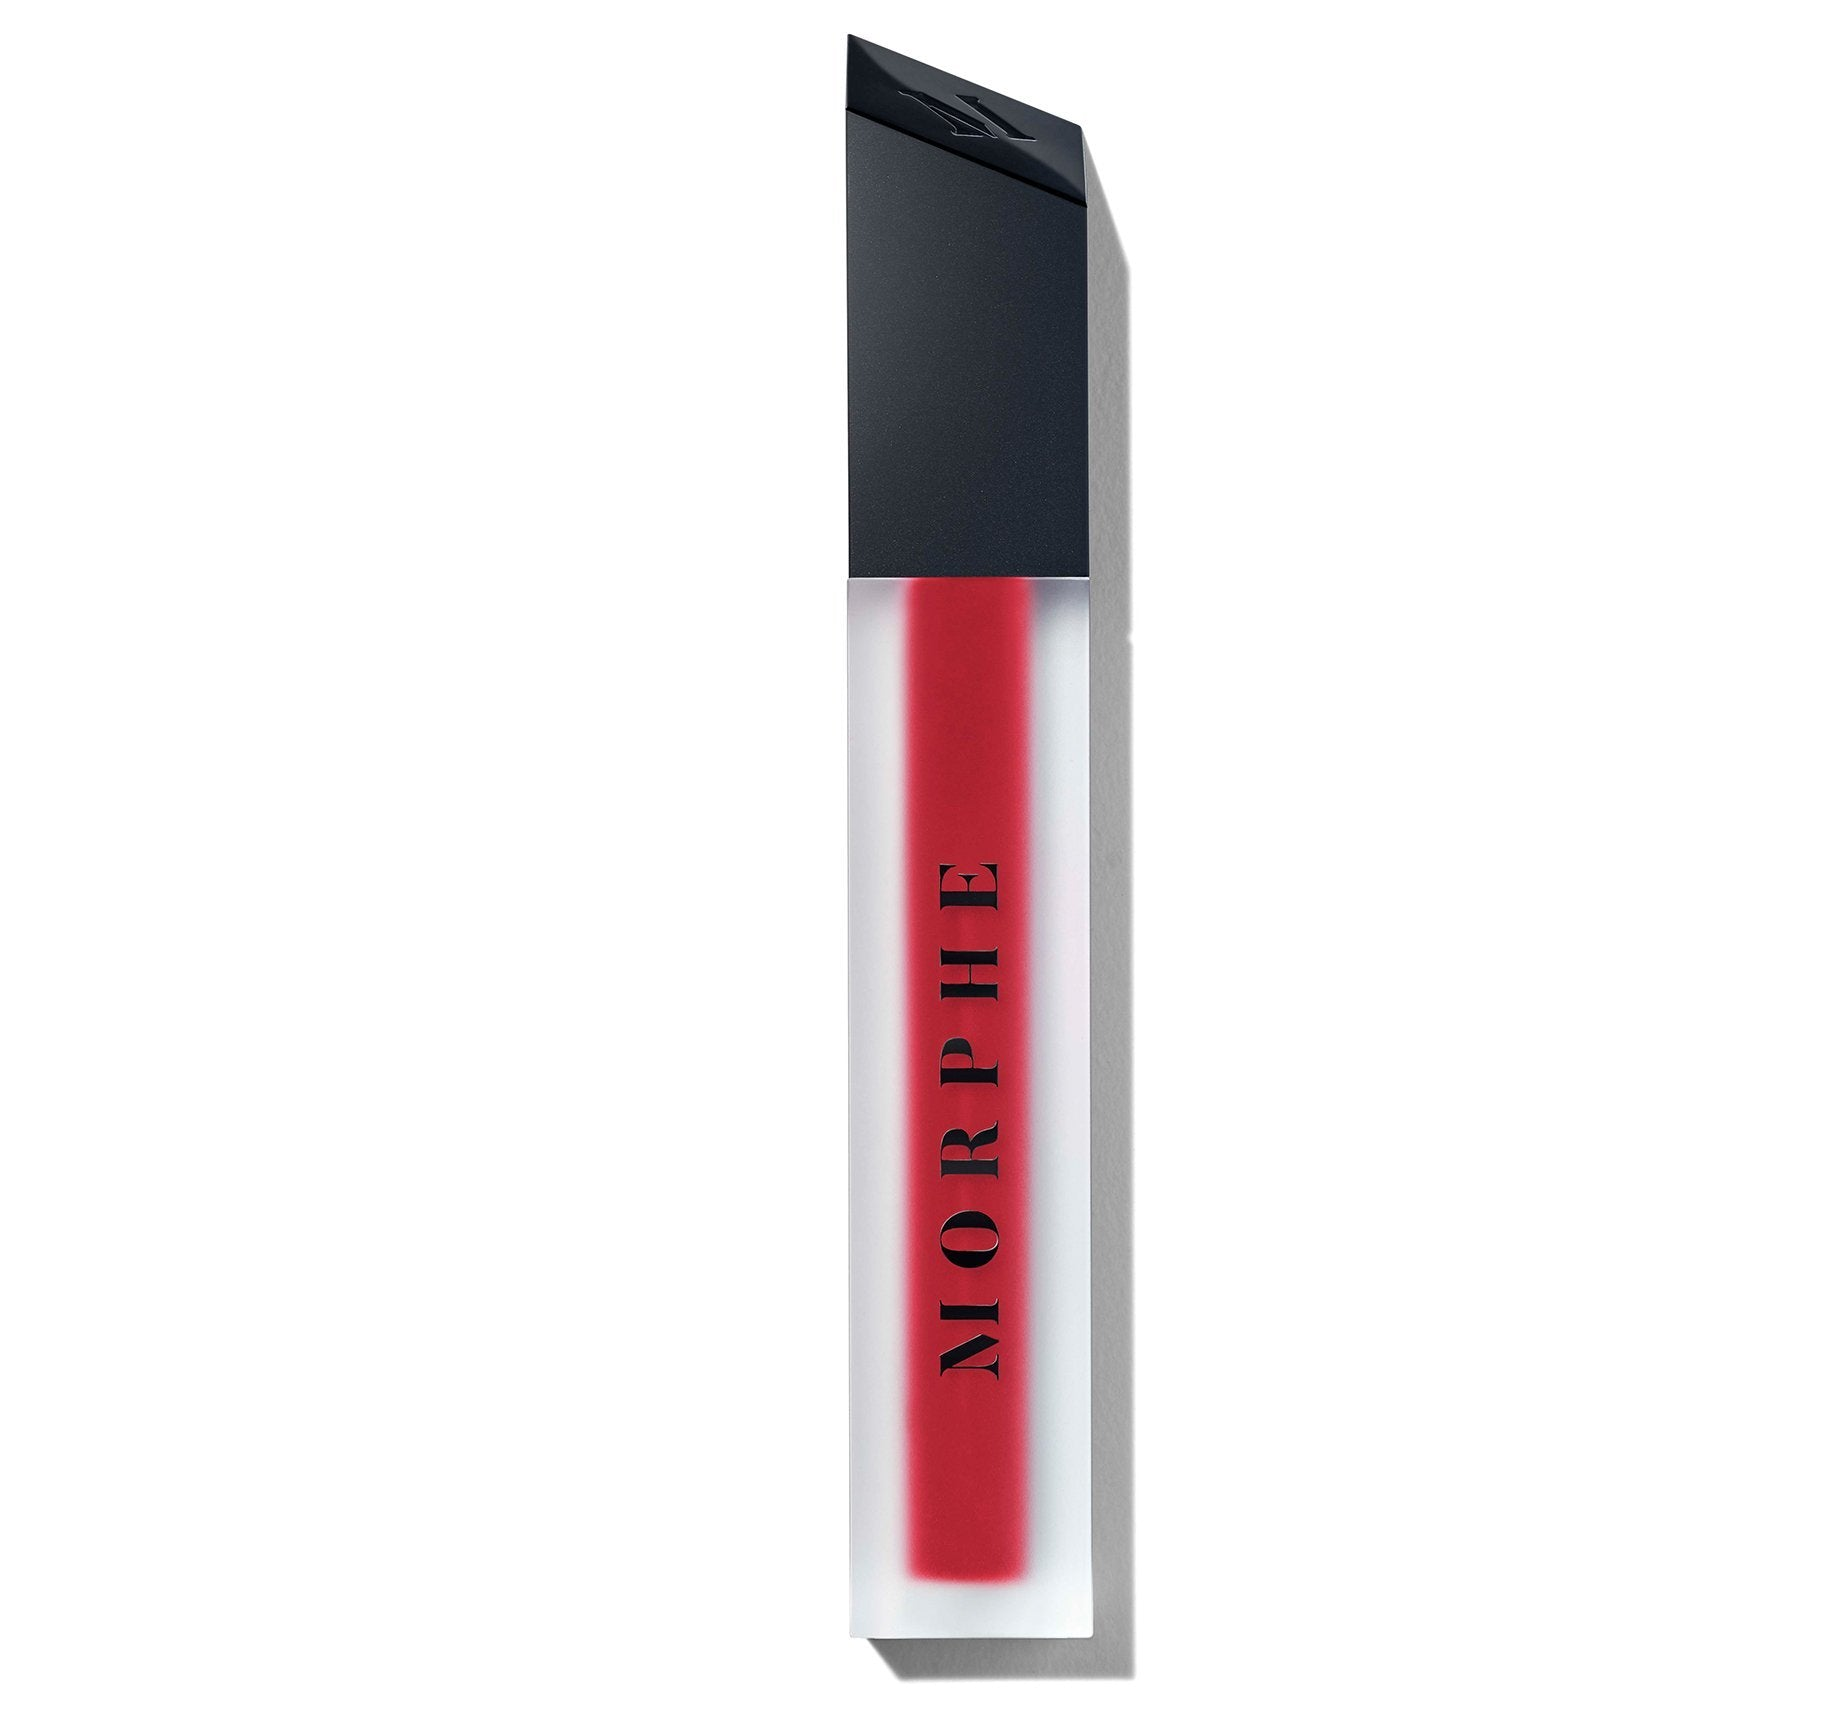 MATTE LIQUID LIPSTICK - BLOODSHOT, view larger image